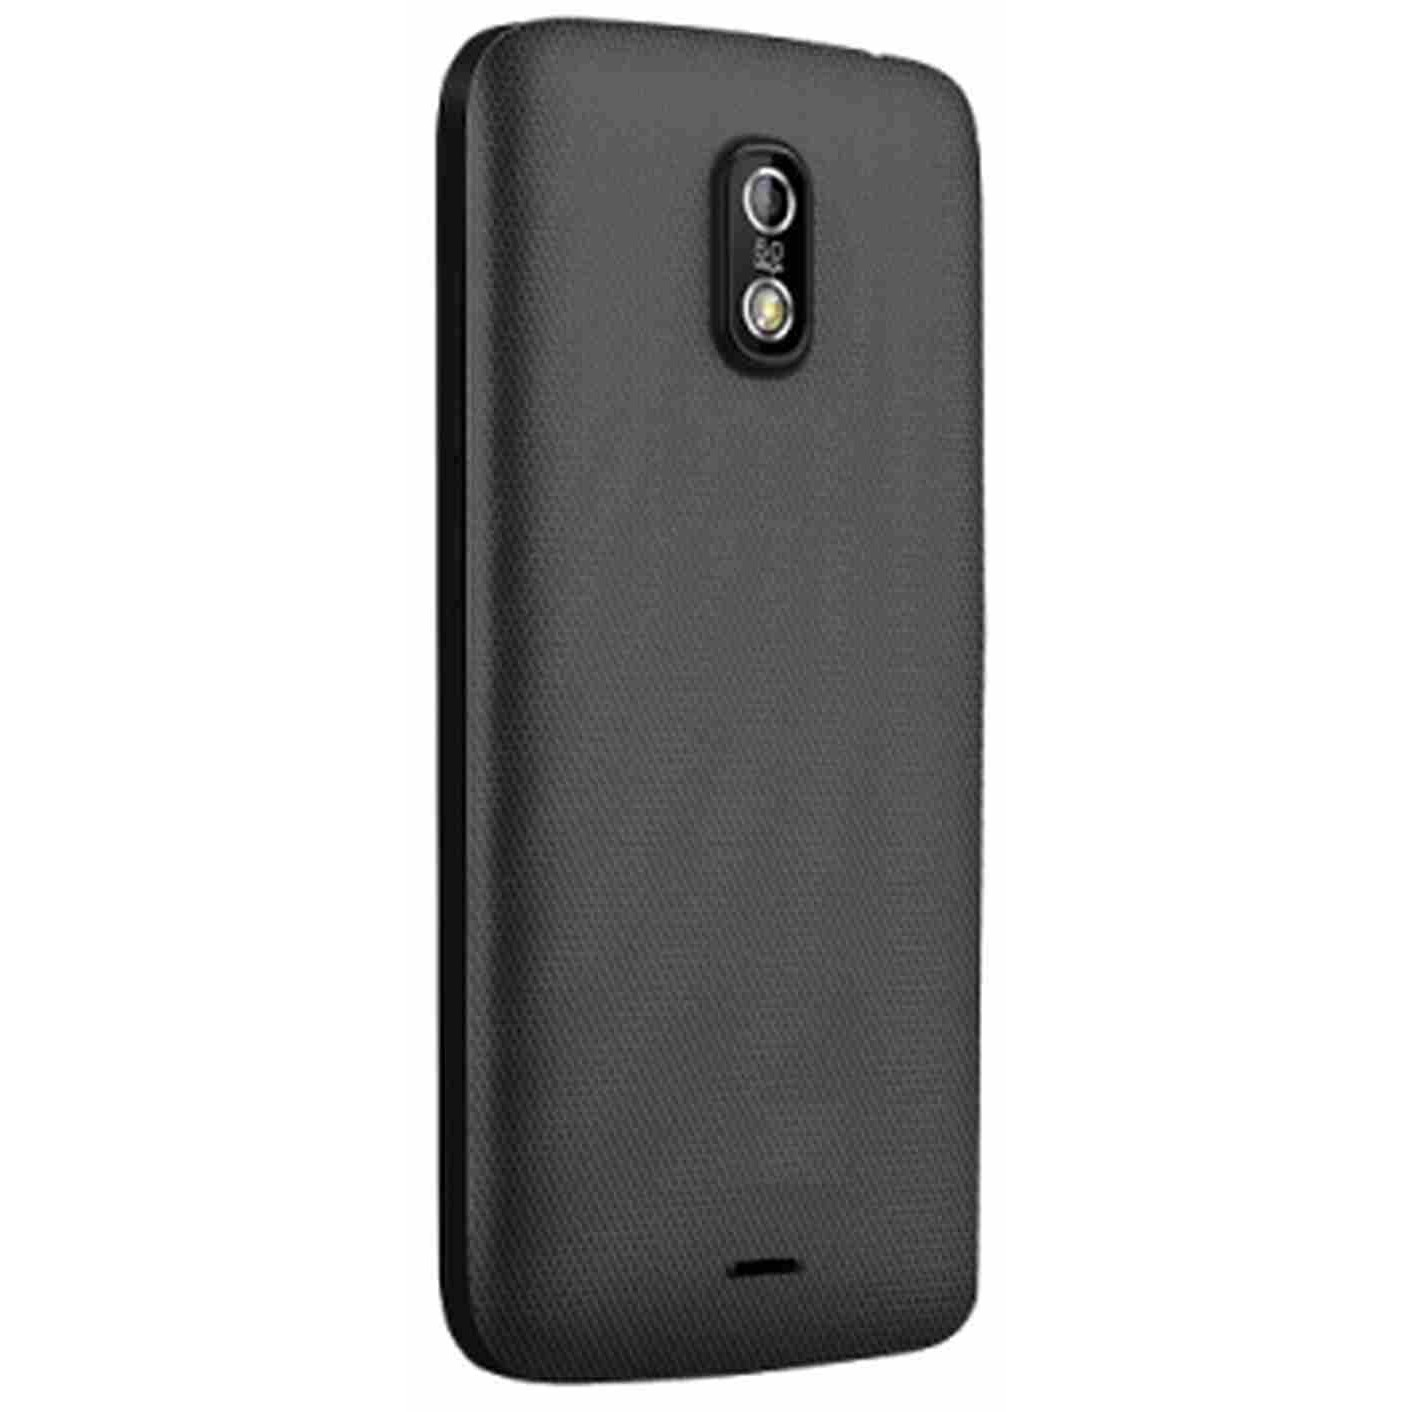 competitive price 53f37 b24af Full Body Housing for Infinix Hot X507 - Black